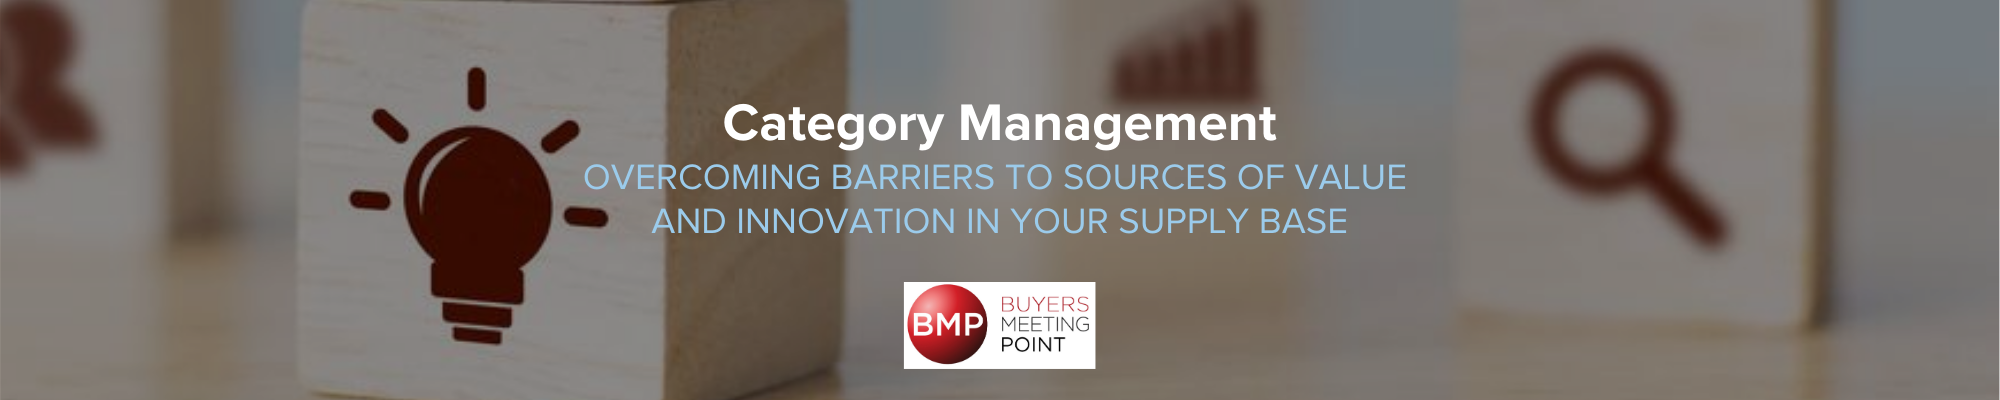 Category Management: Overcoming Barriers to Sources of Value and Innovation in Your Supply Base